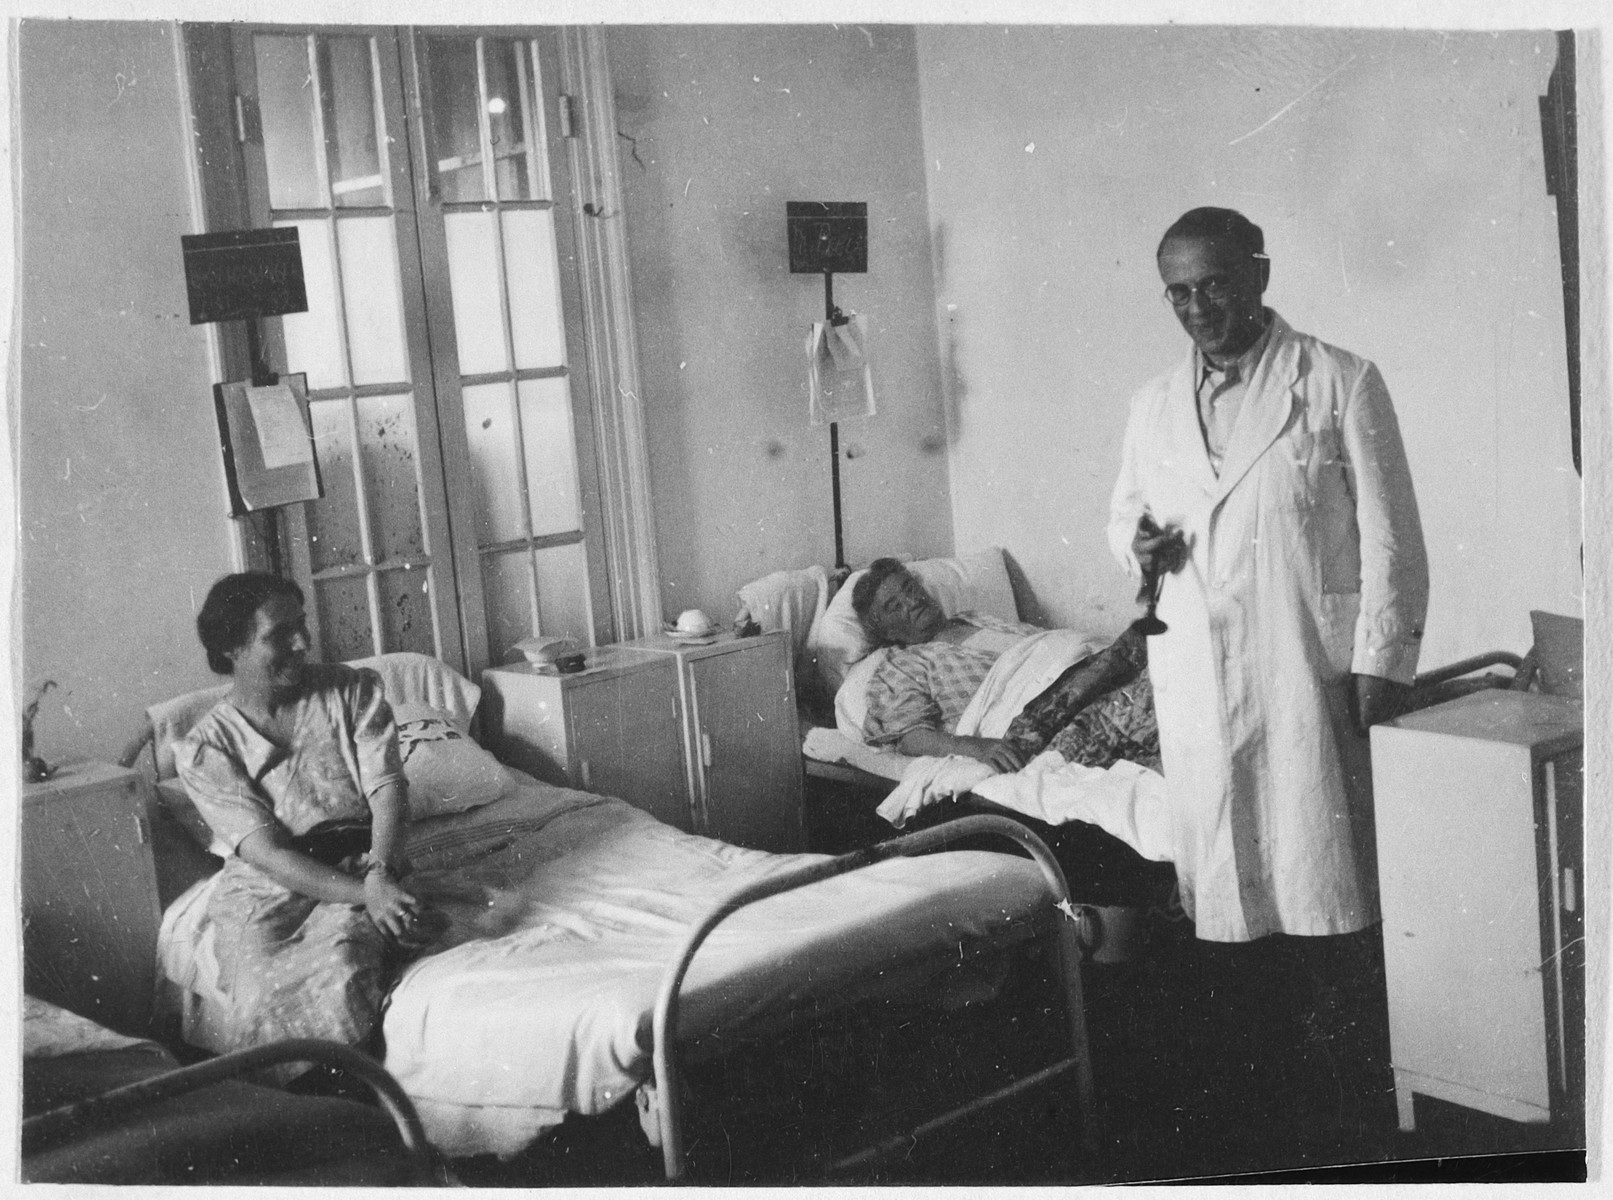 A physician visits two female patients in their room in the Shanghai Jewish hospital.